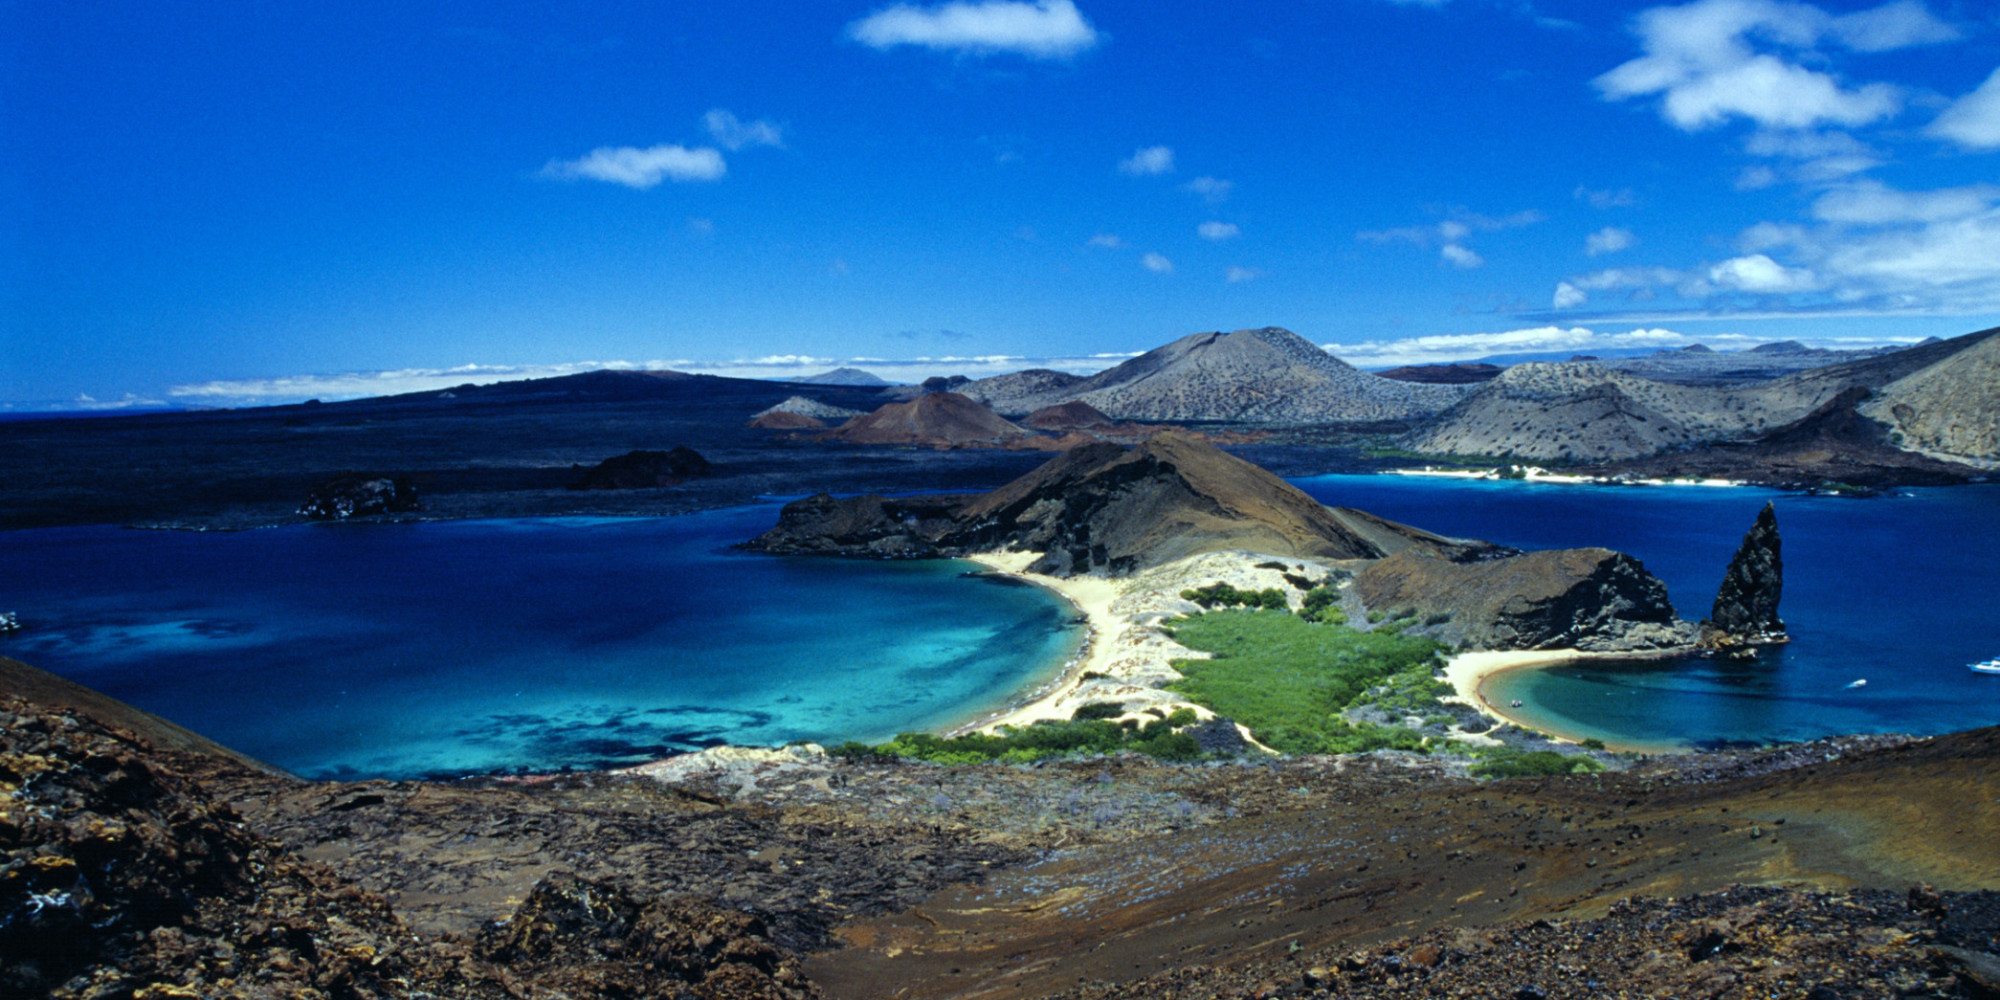 In Photos: 10 Reasons To Visit The Galapagos Islands In